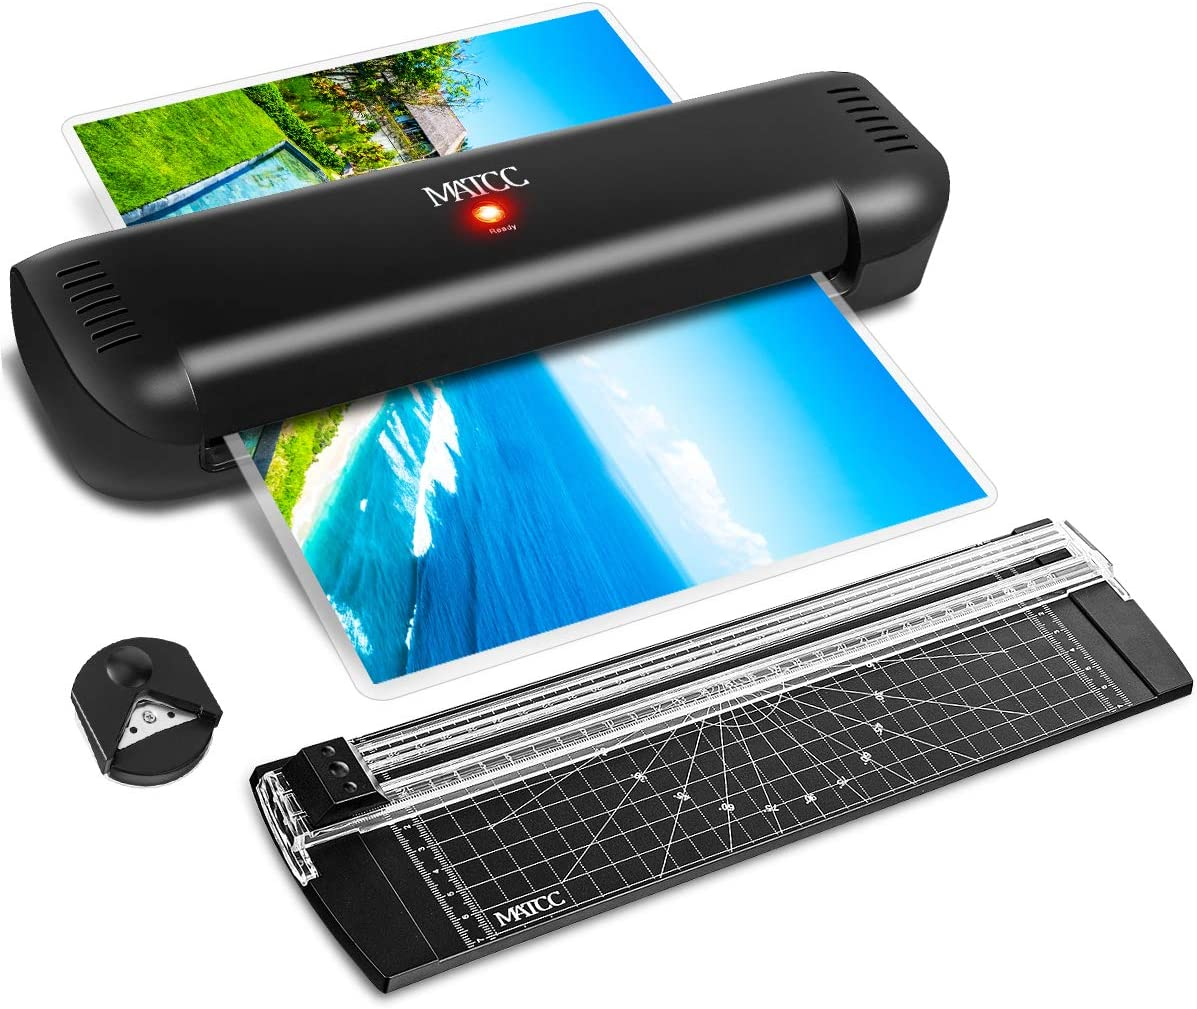 Top 10 Best Laminating Machine For Home Reviews in 2021 5